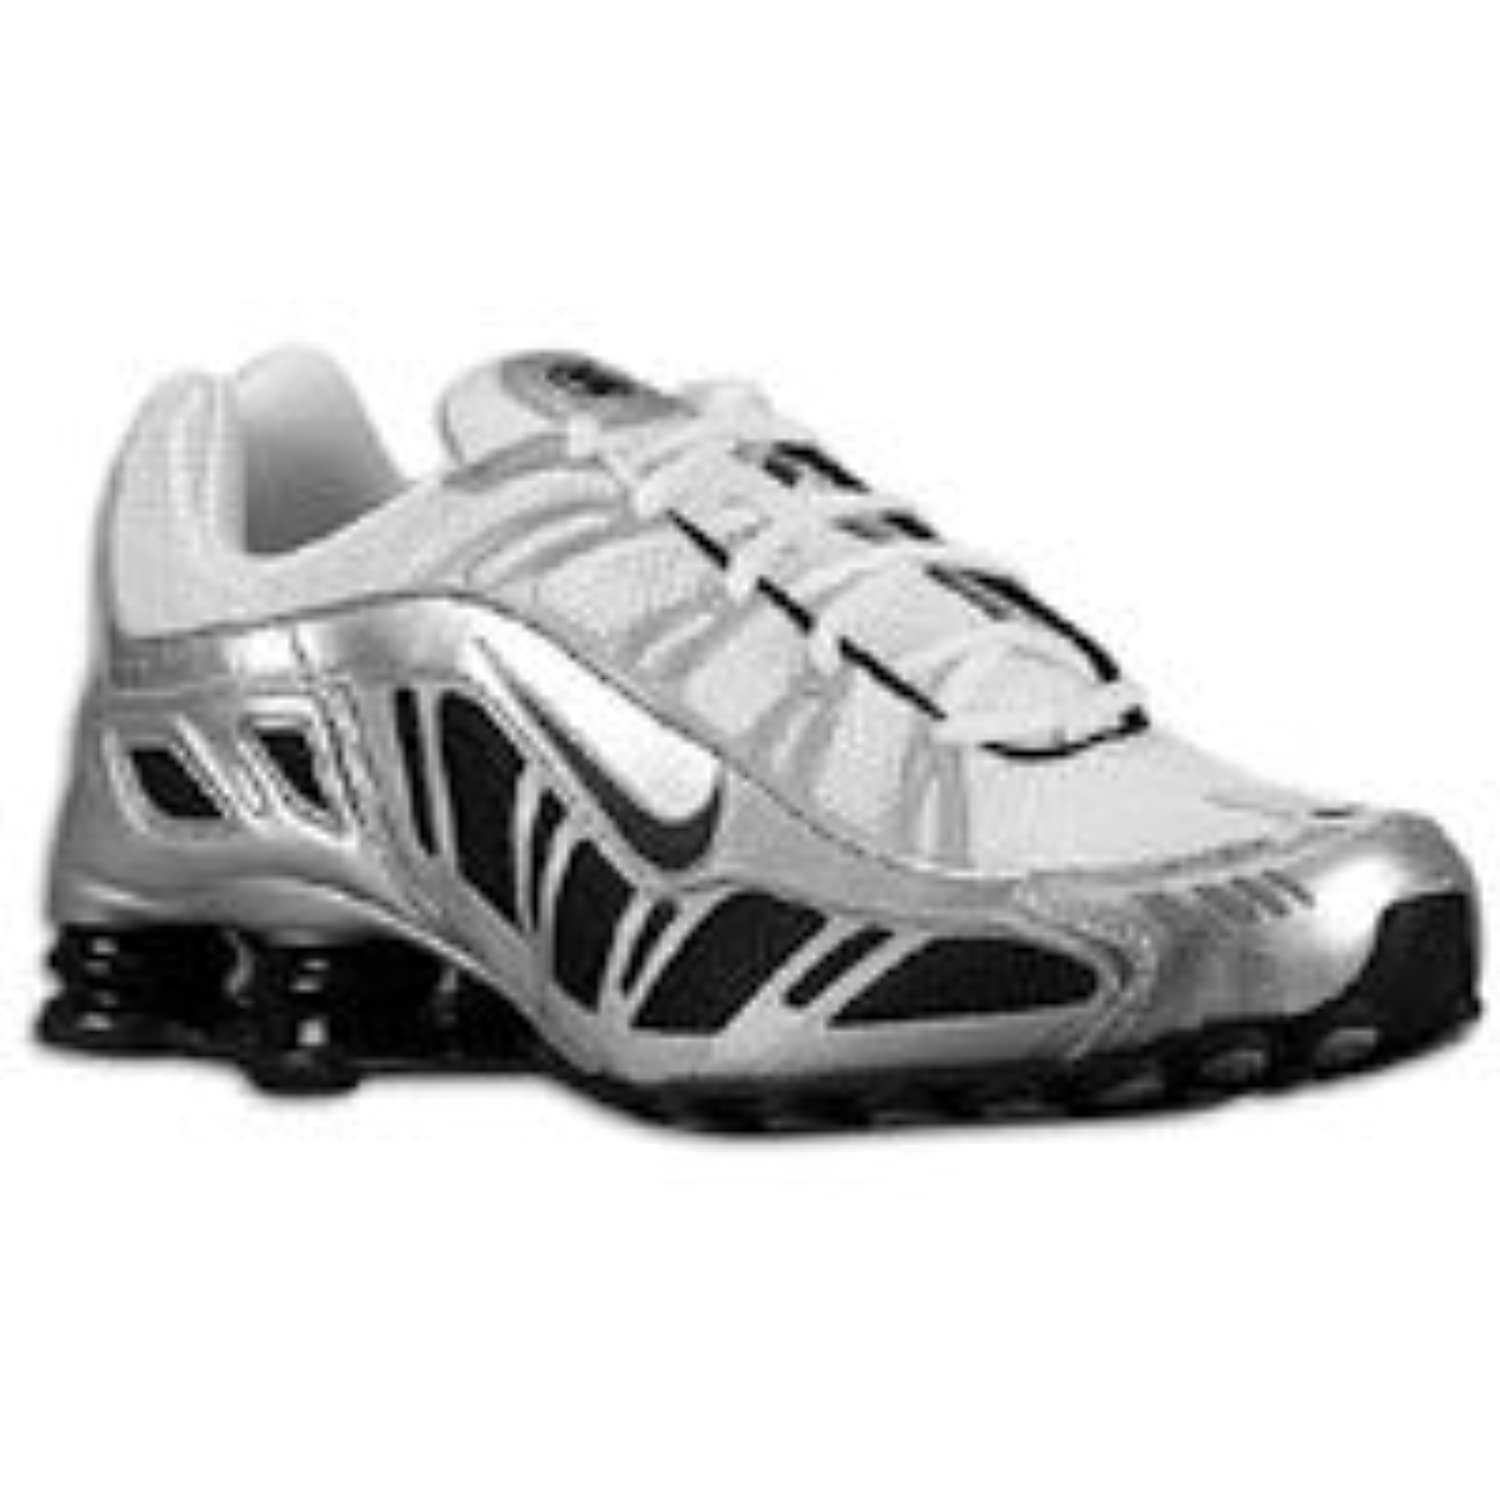 size 40 c70c1 27cb6 ... reduced images for nike shox turbo 3.2 sl white black metallic silver  size 7 455541 102